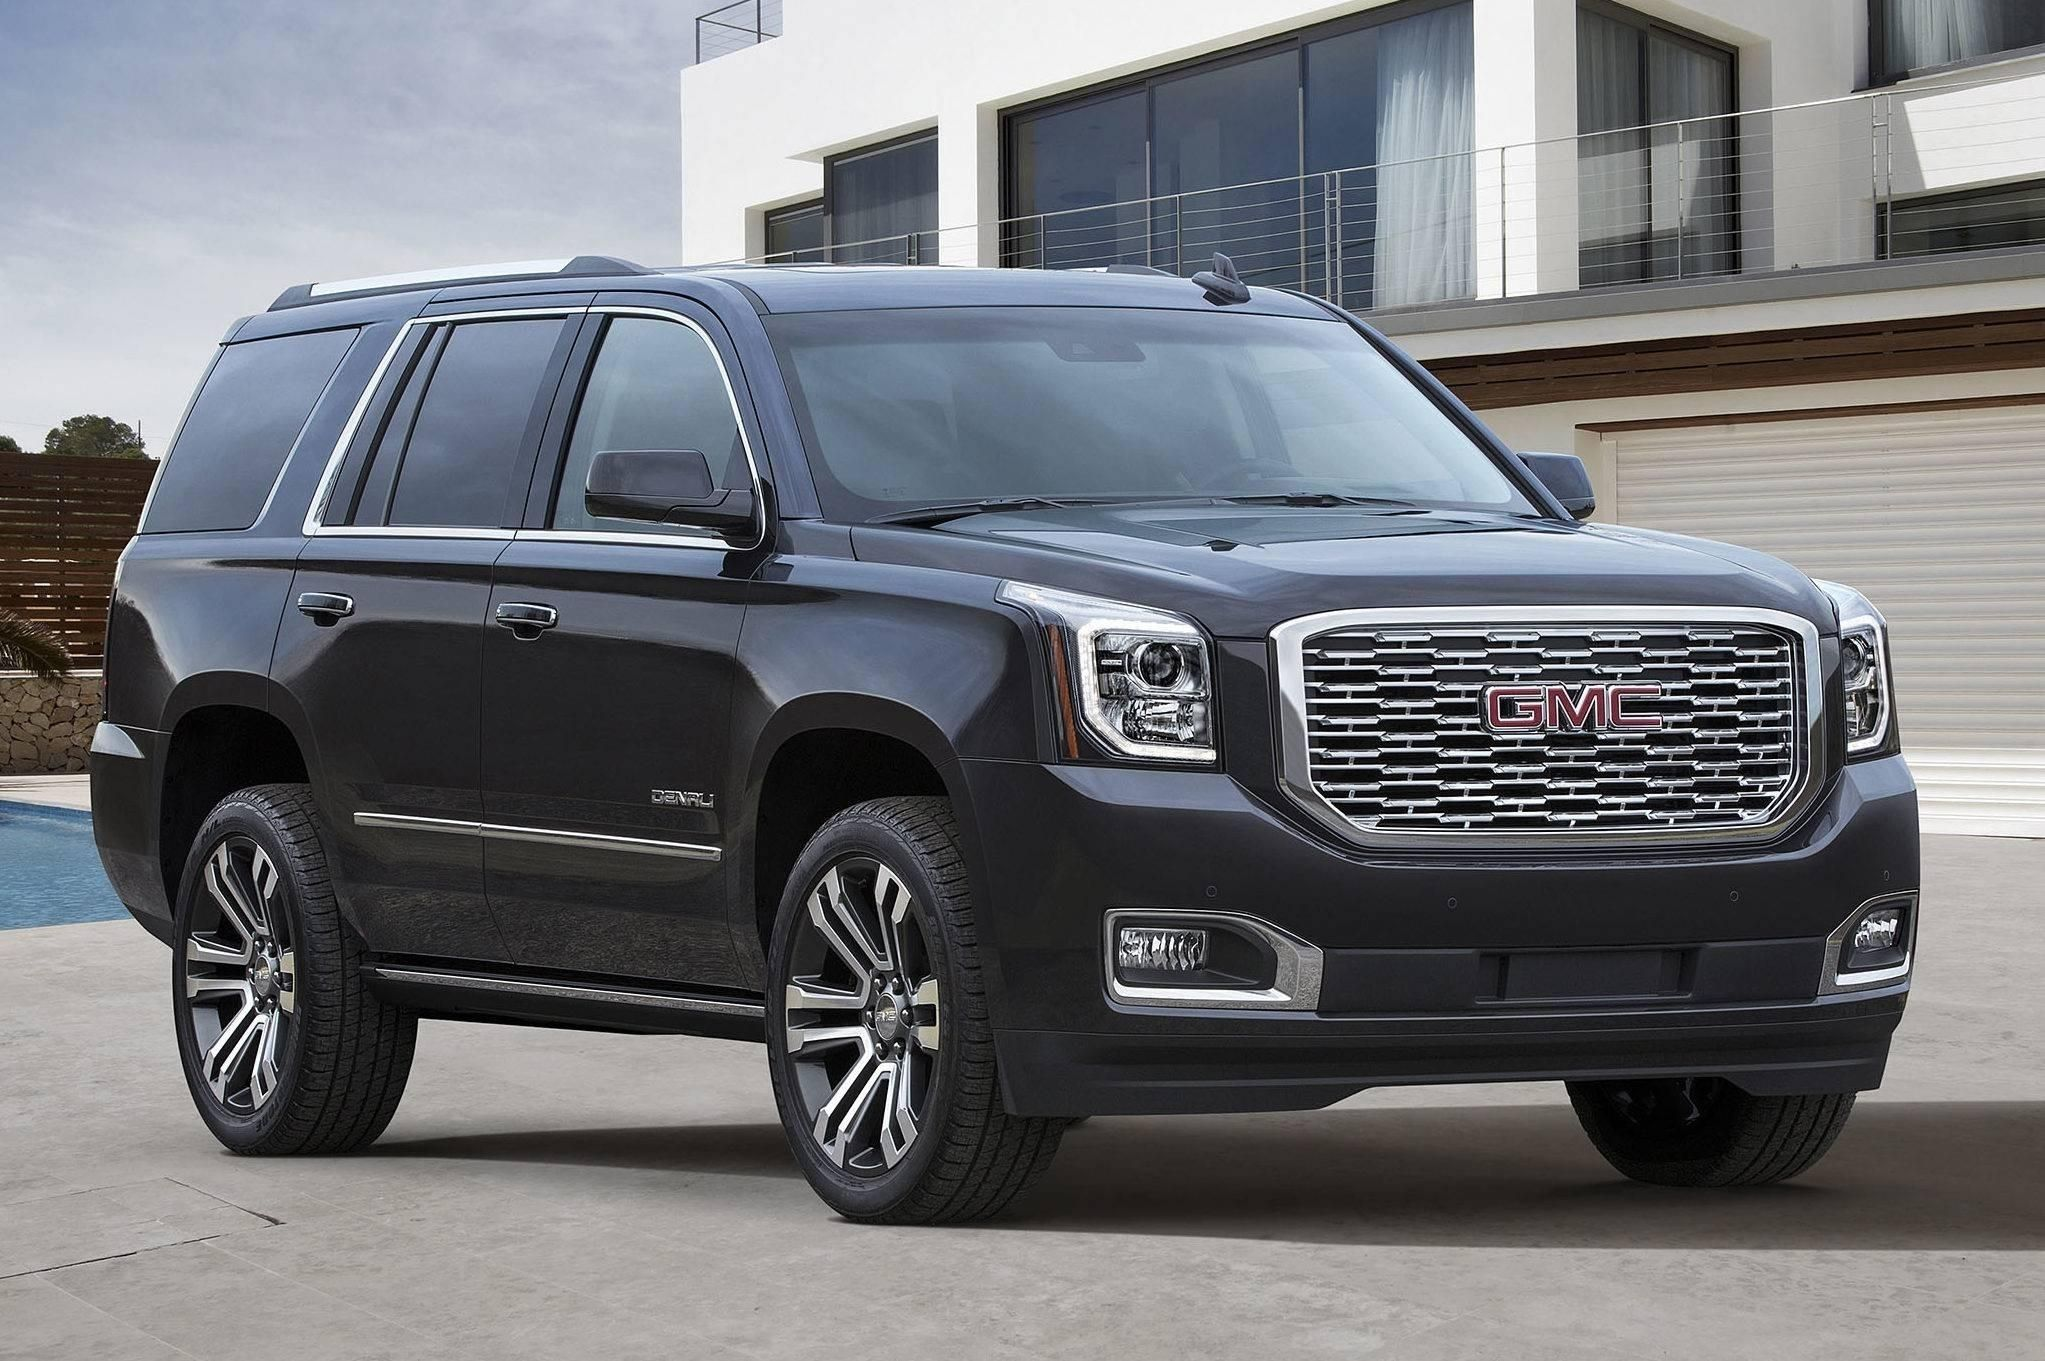 2019 Gmc Envoy Redesign Car 2018 2019 Within 2019 Gmc Envoy